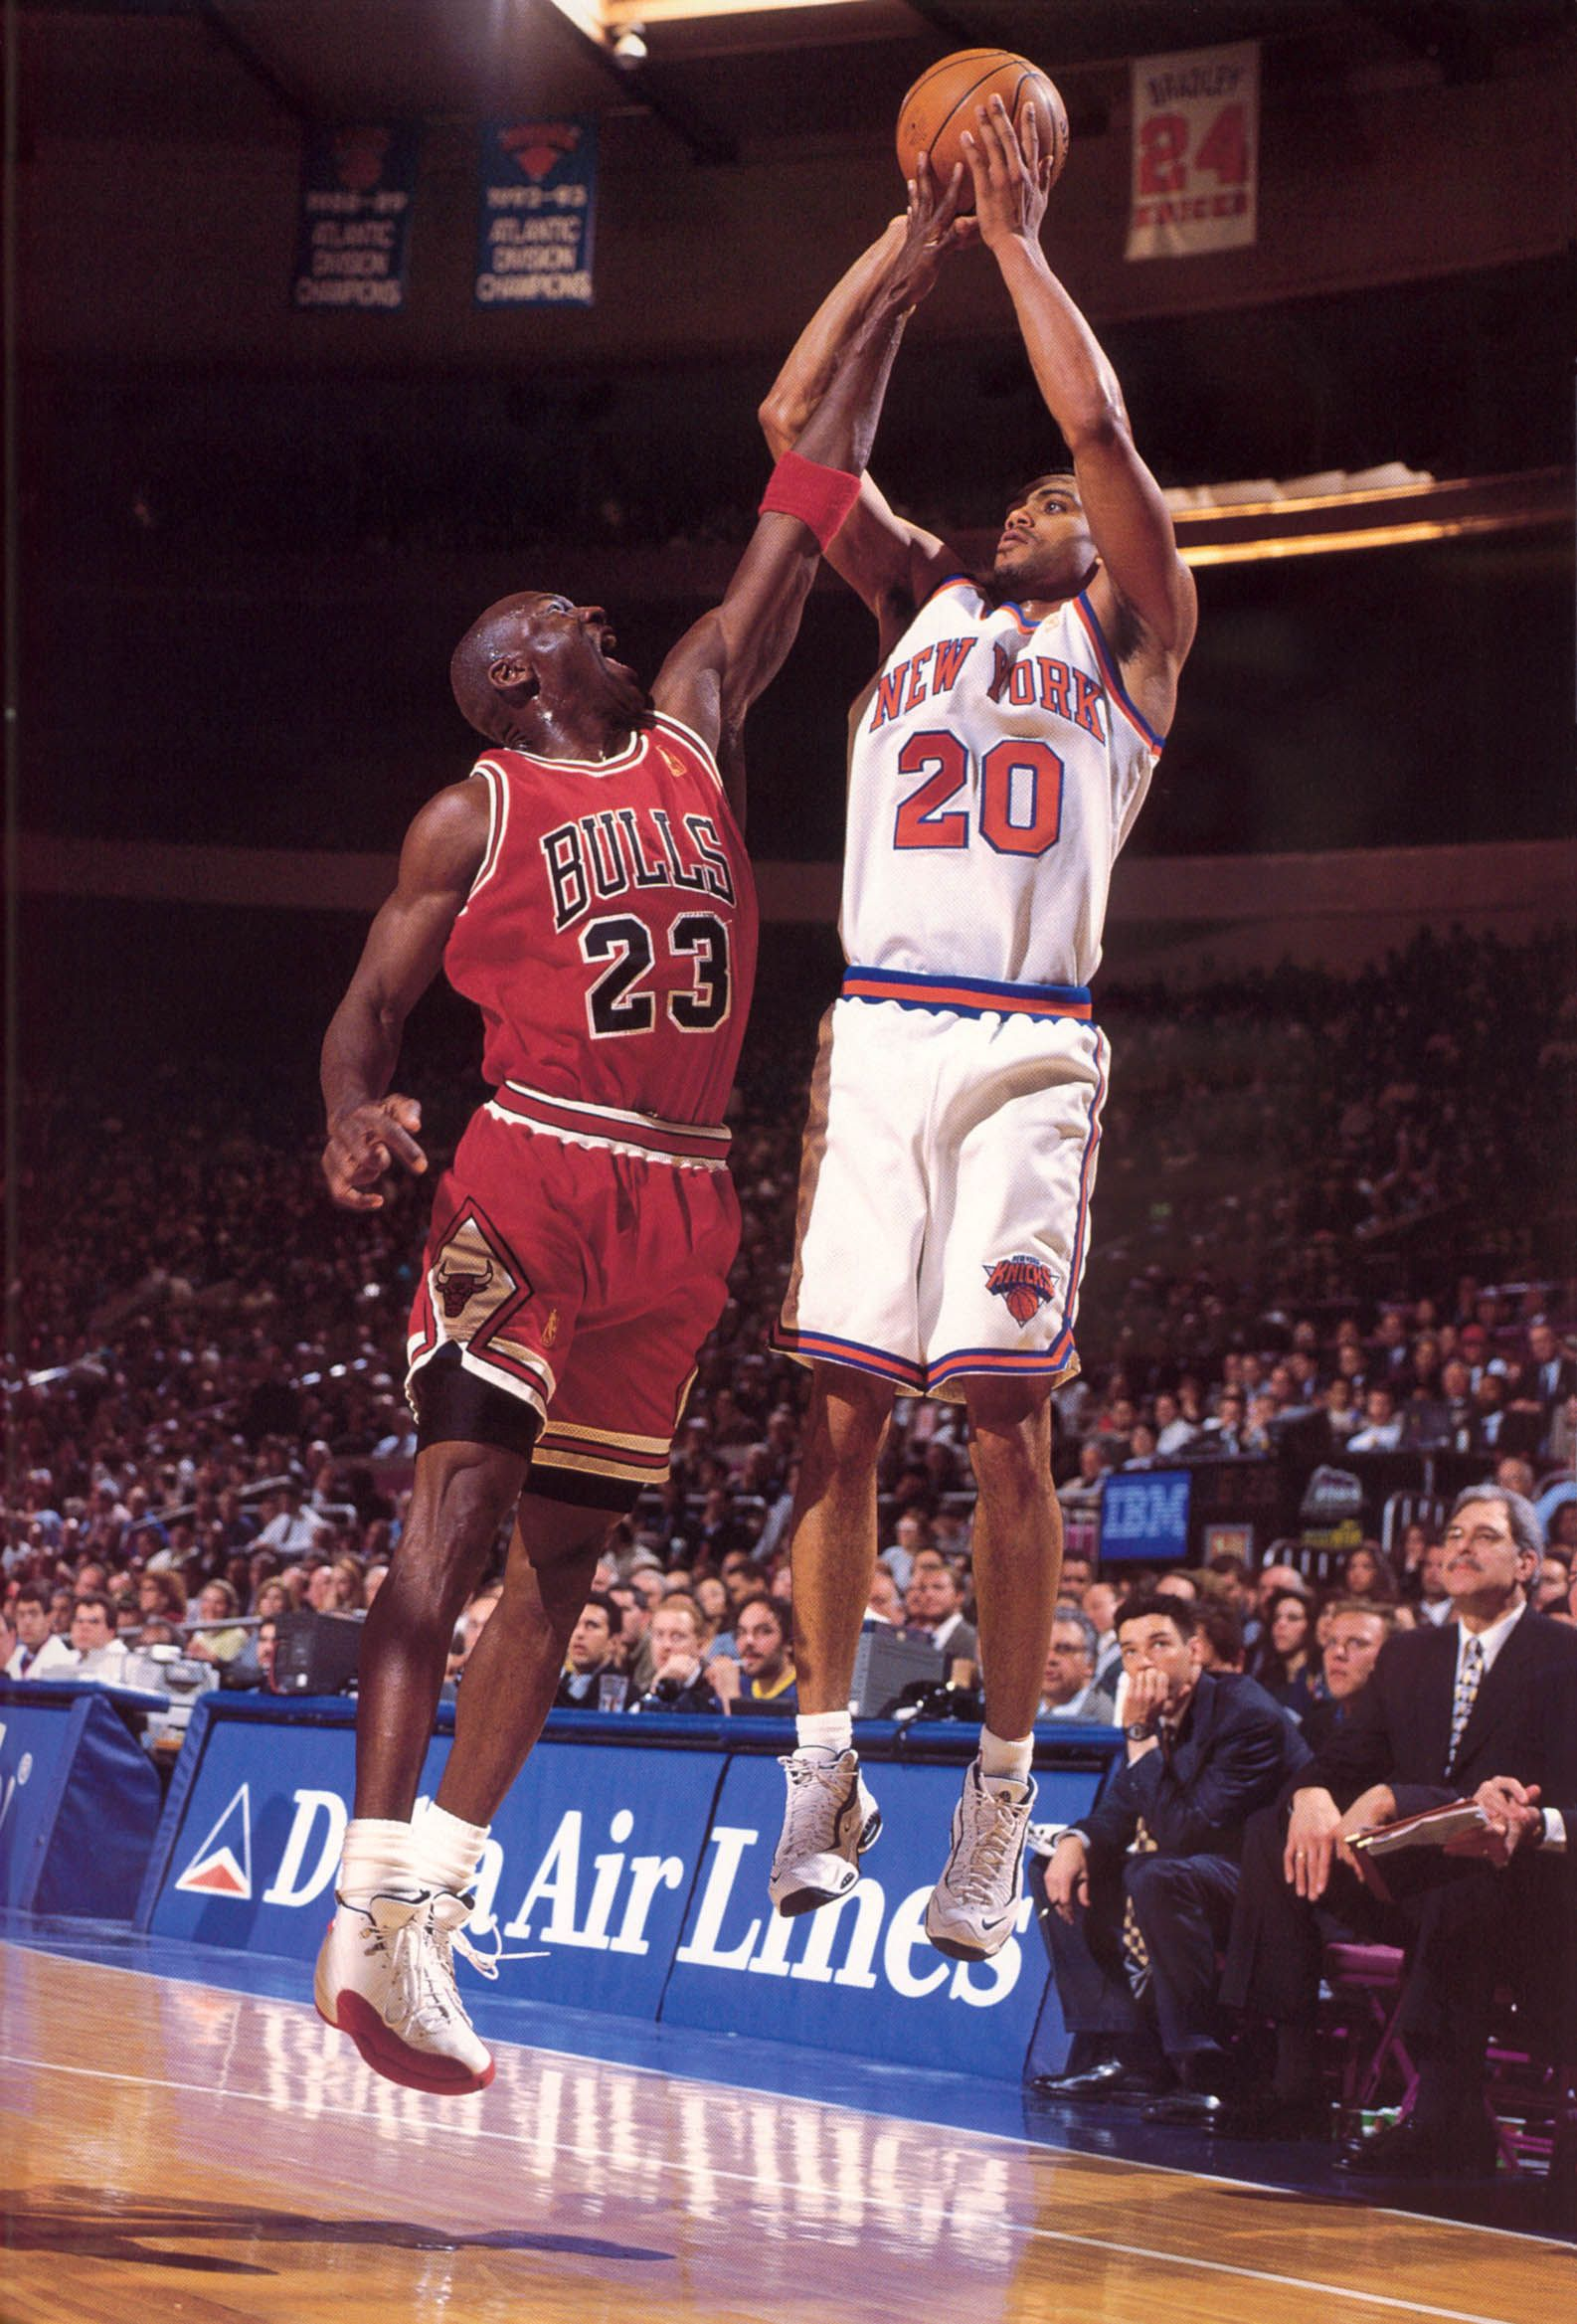 Allan Houston New York Knicks Michael Jordan Chicago Bulls my two faves! cd0c9985c